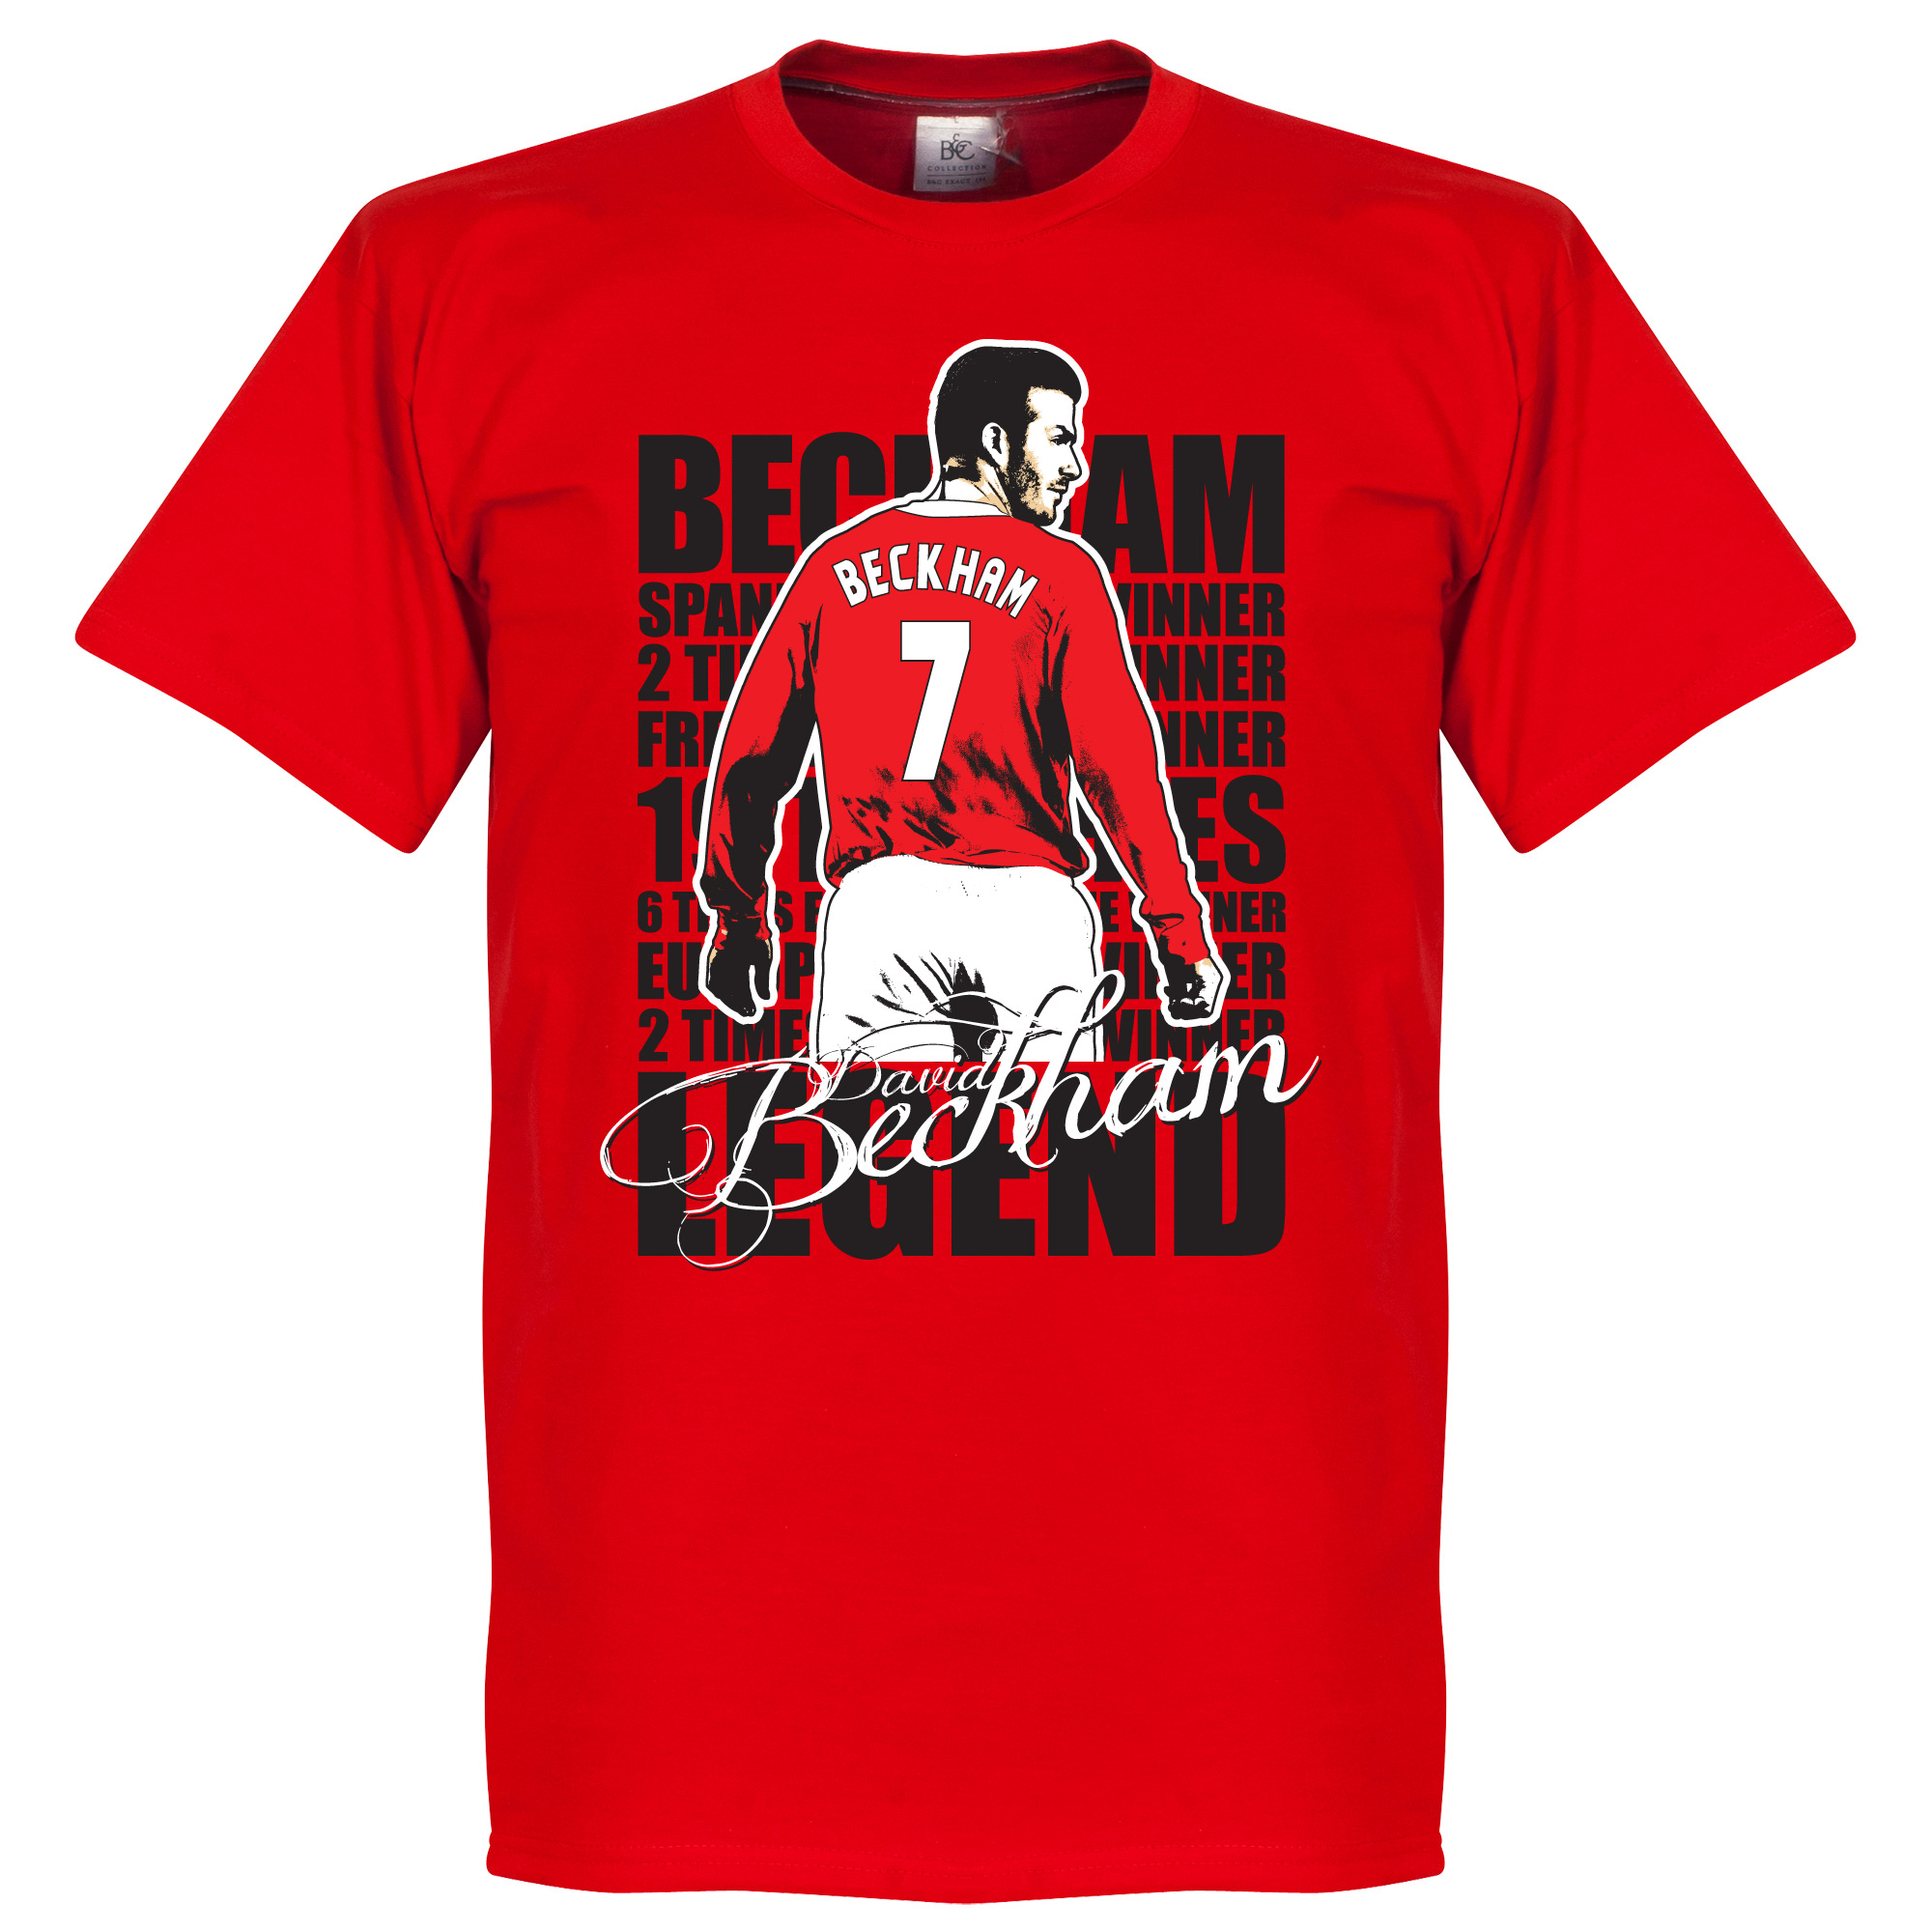 David Beckham Legend Tee - Red - L